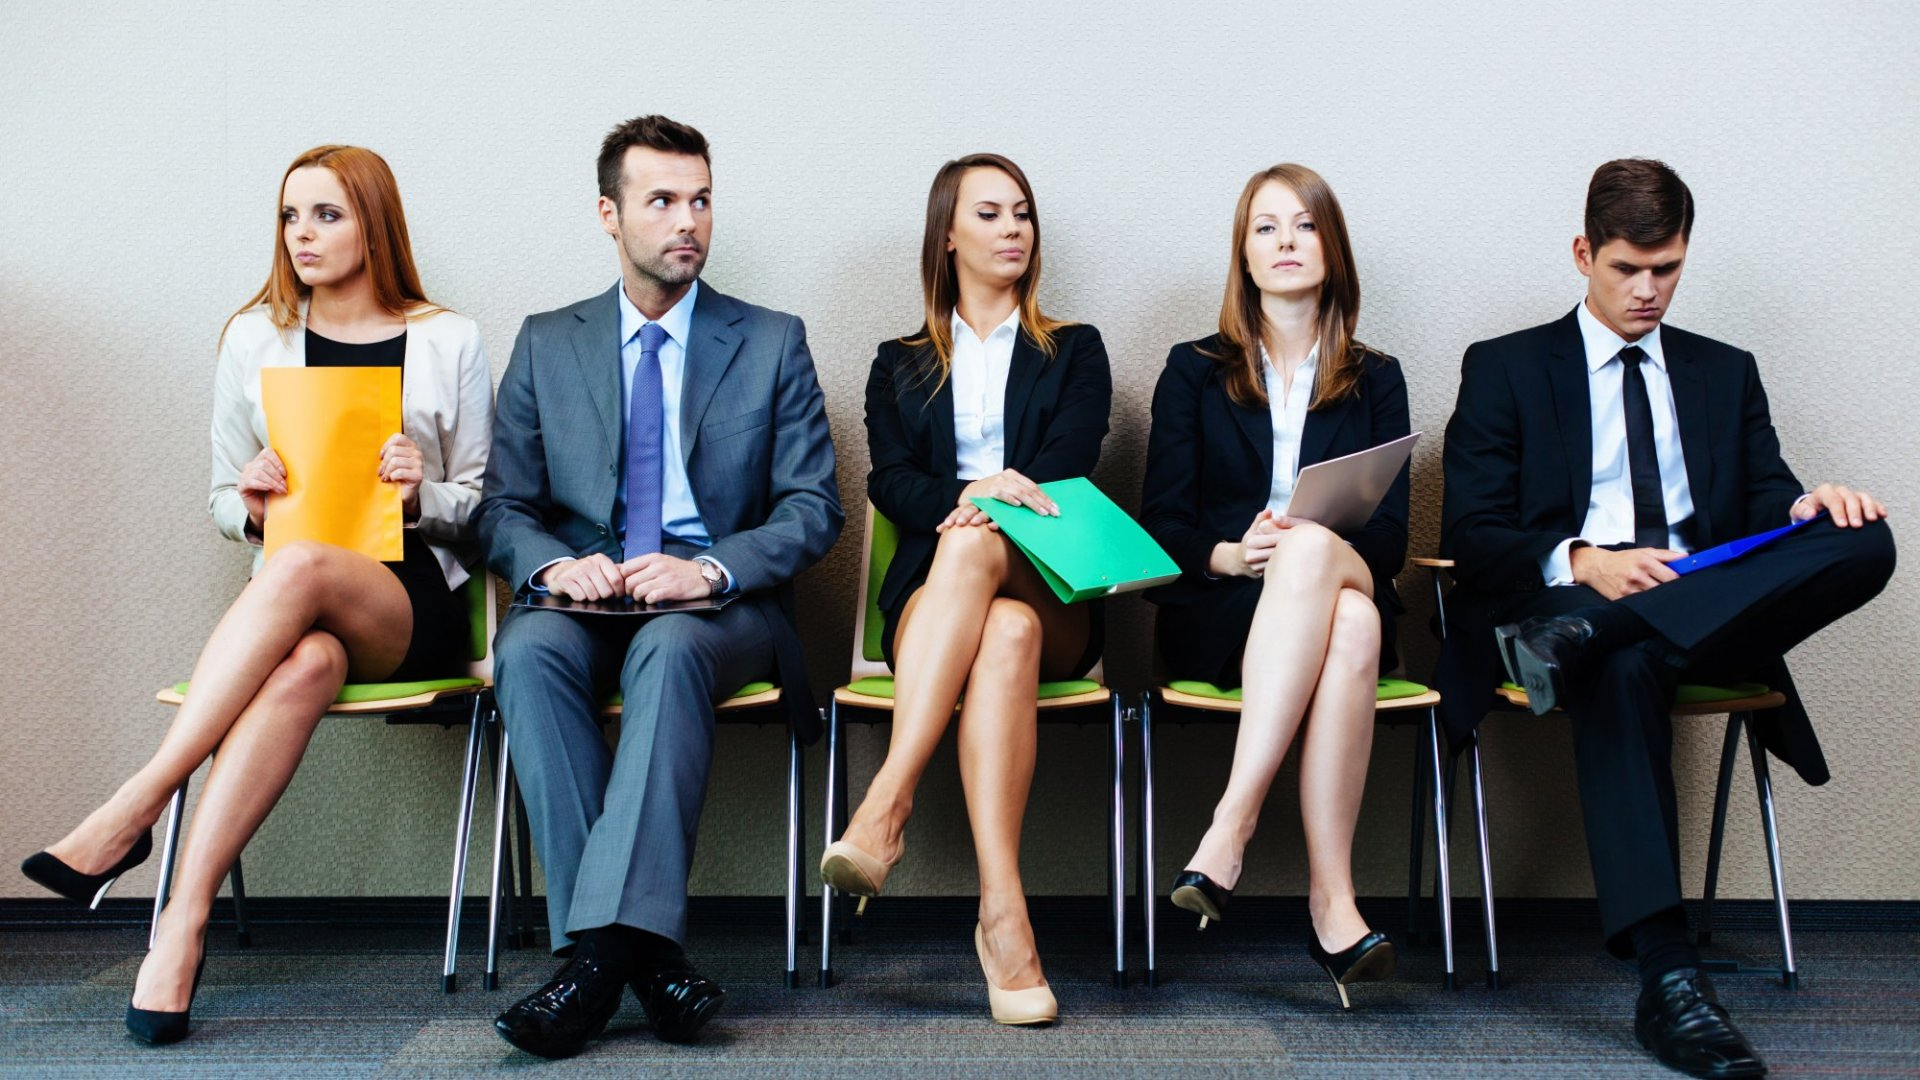 How You Can Nail a Job Interview